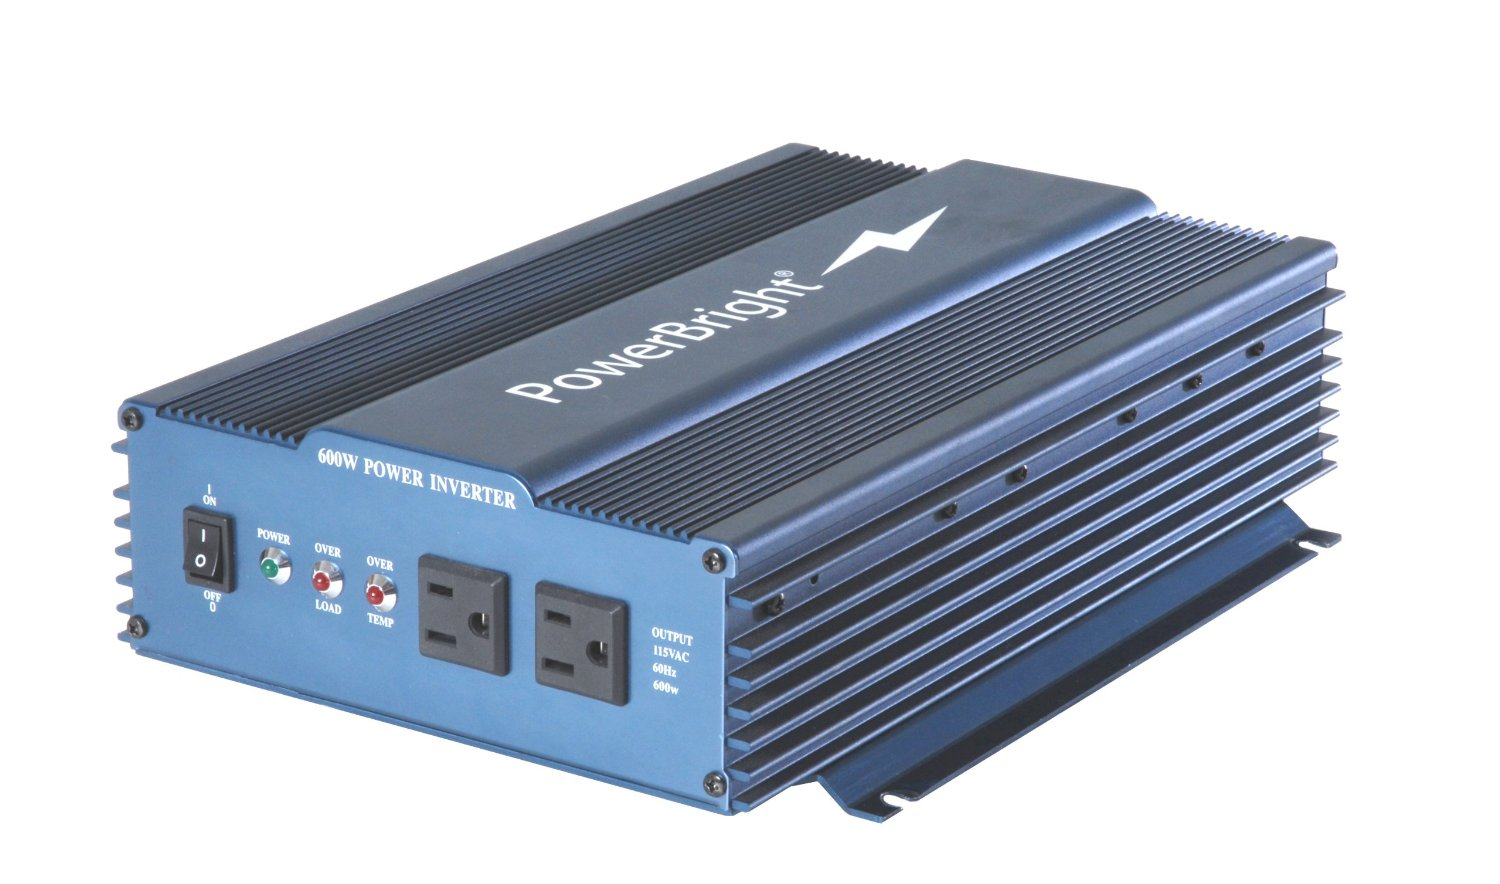 How do you hook up a power inverter